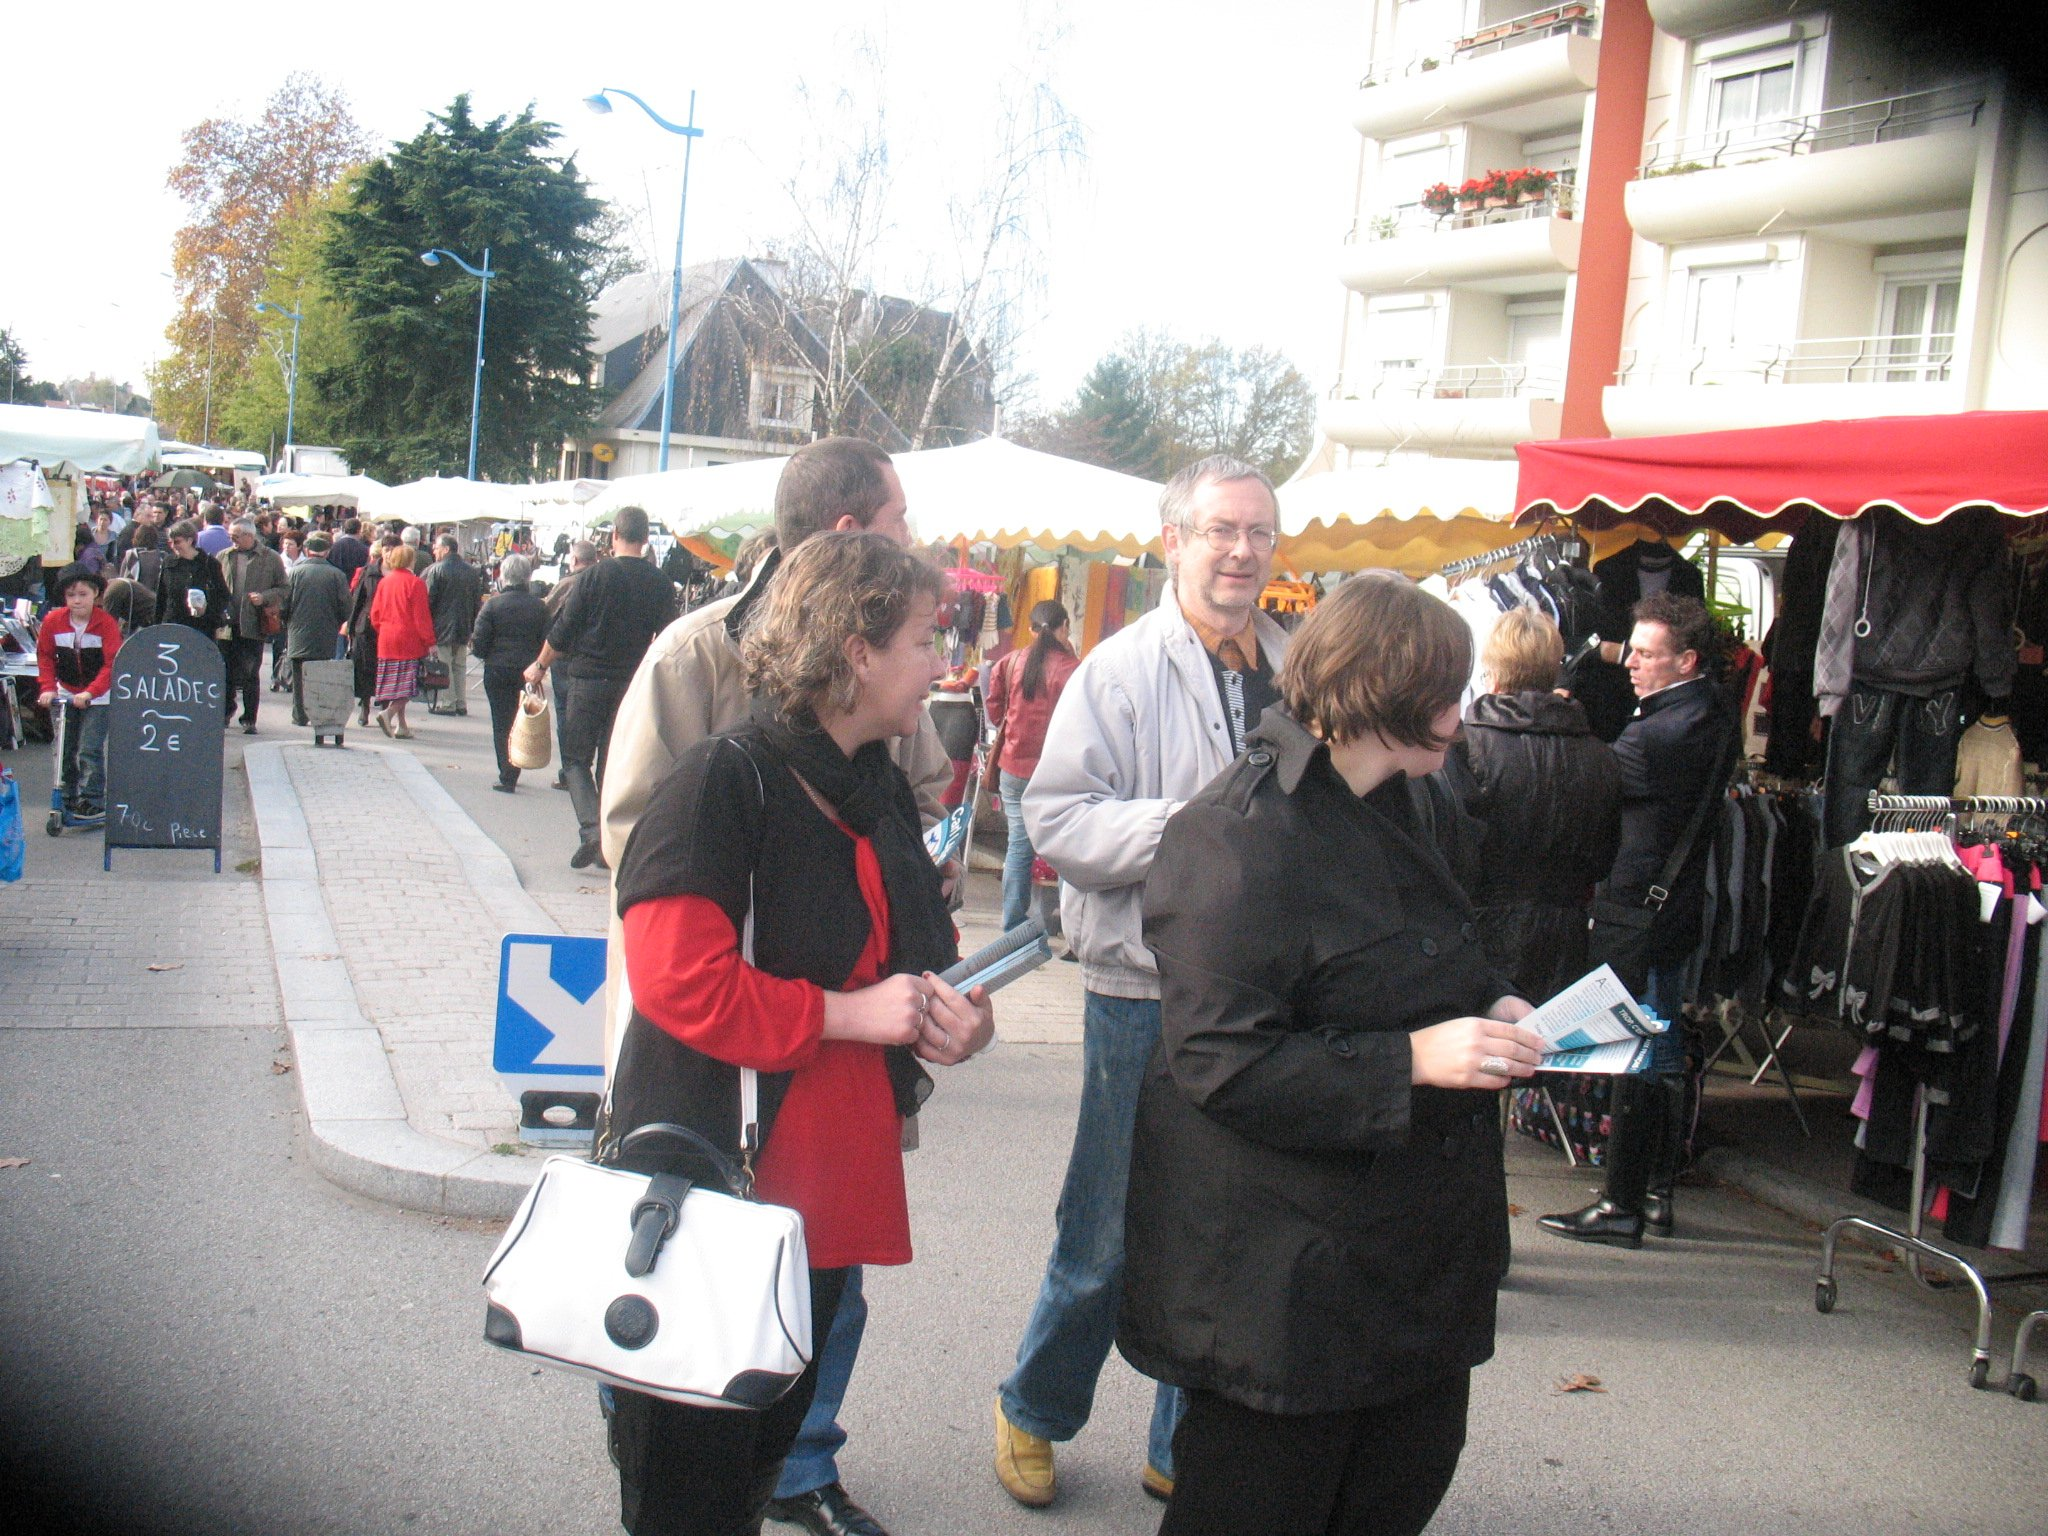 tractage015.jpg